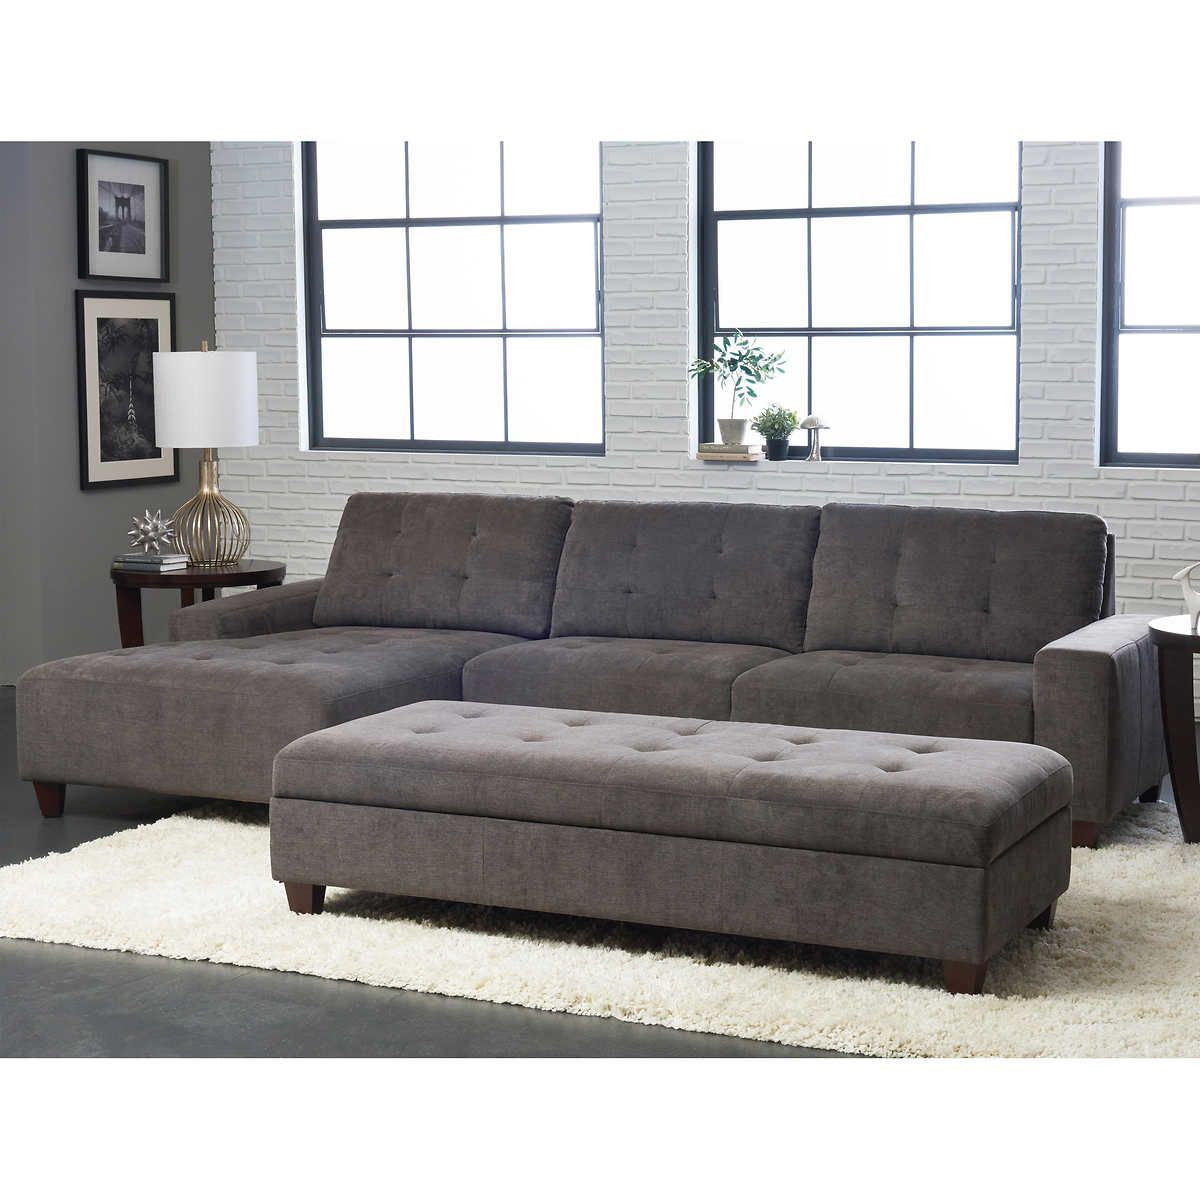 Pin On Fabric Sectional